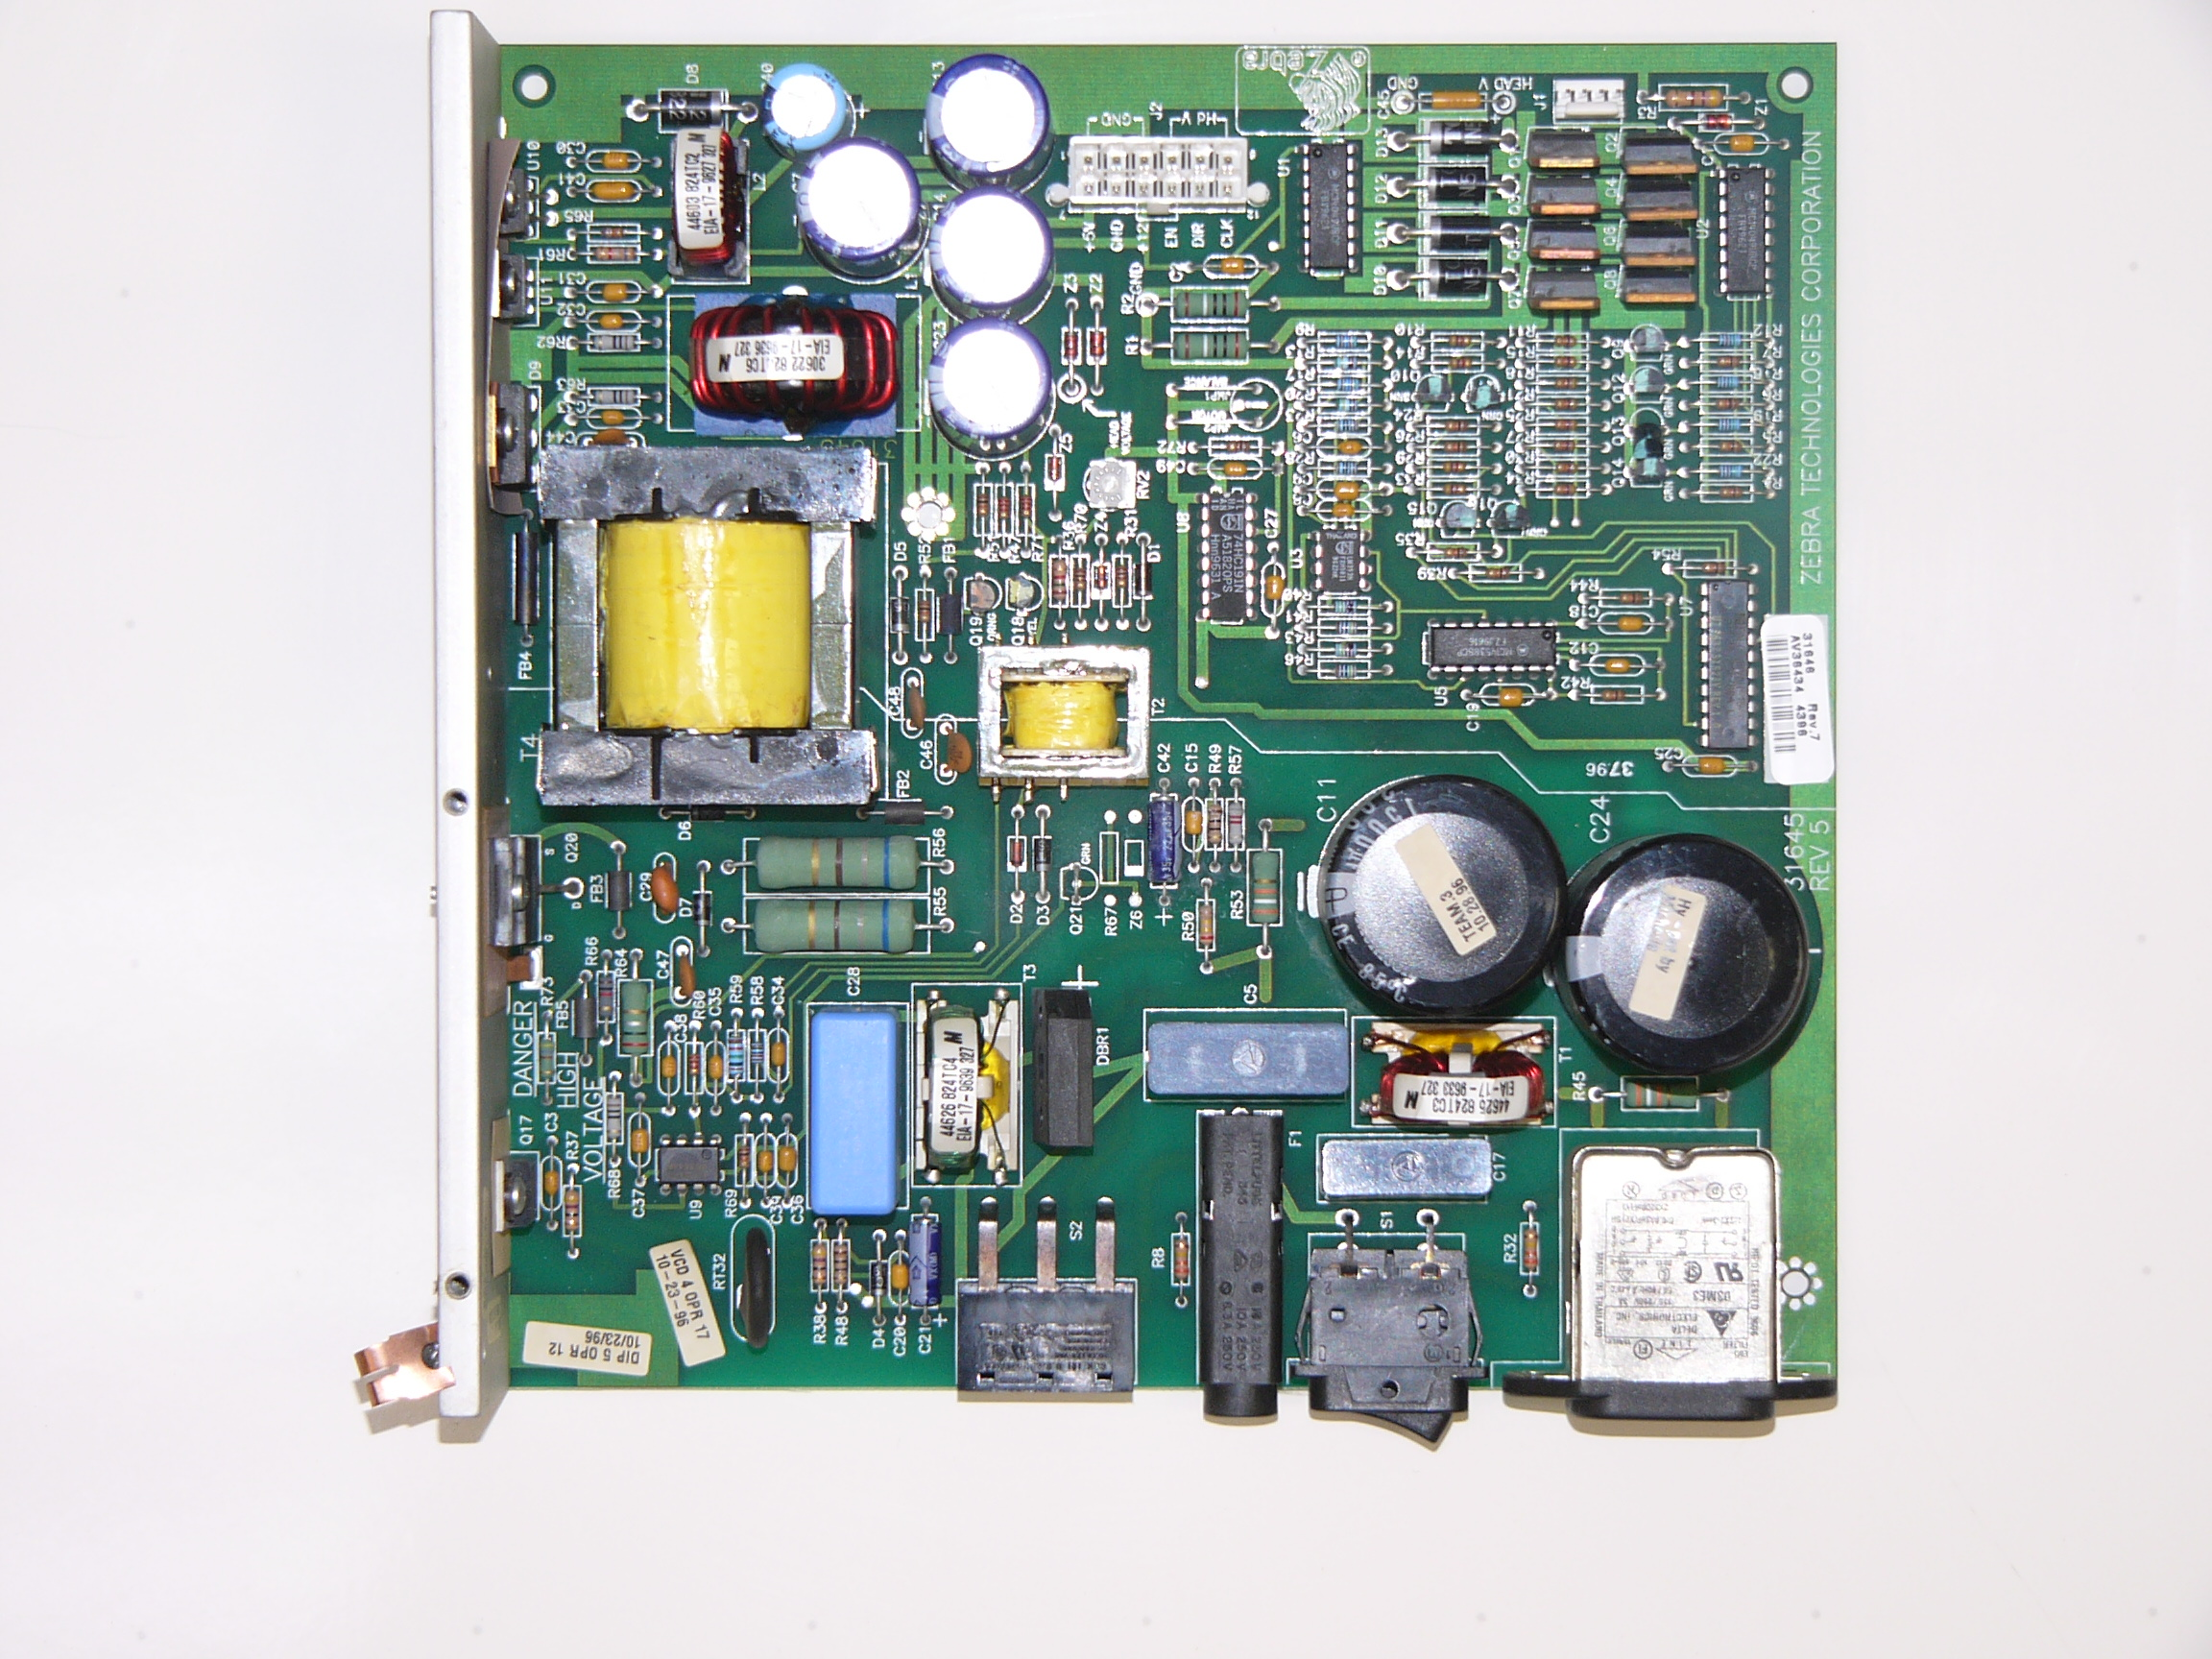 31646 -  - 31646, AC/DC Power Supply, Zebra 105Se